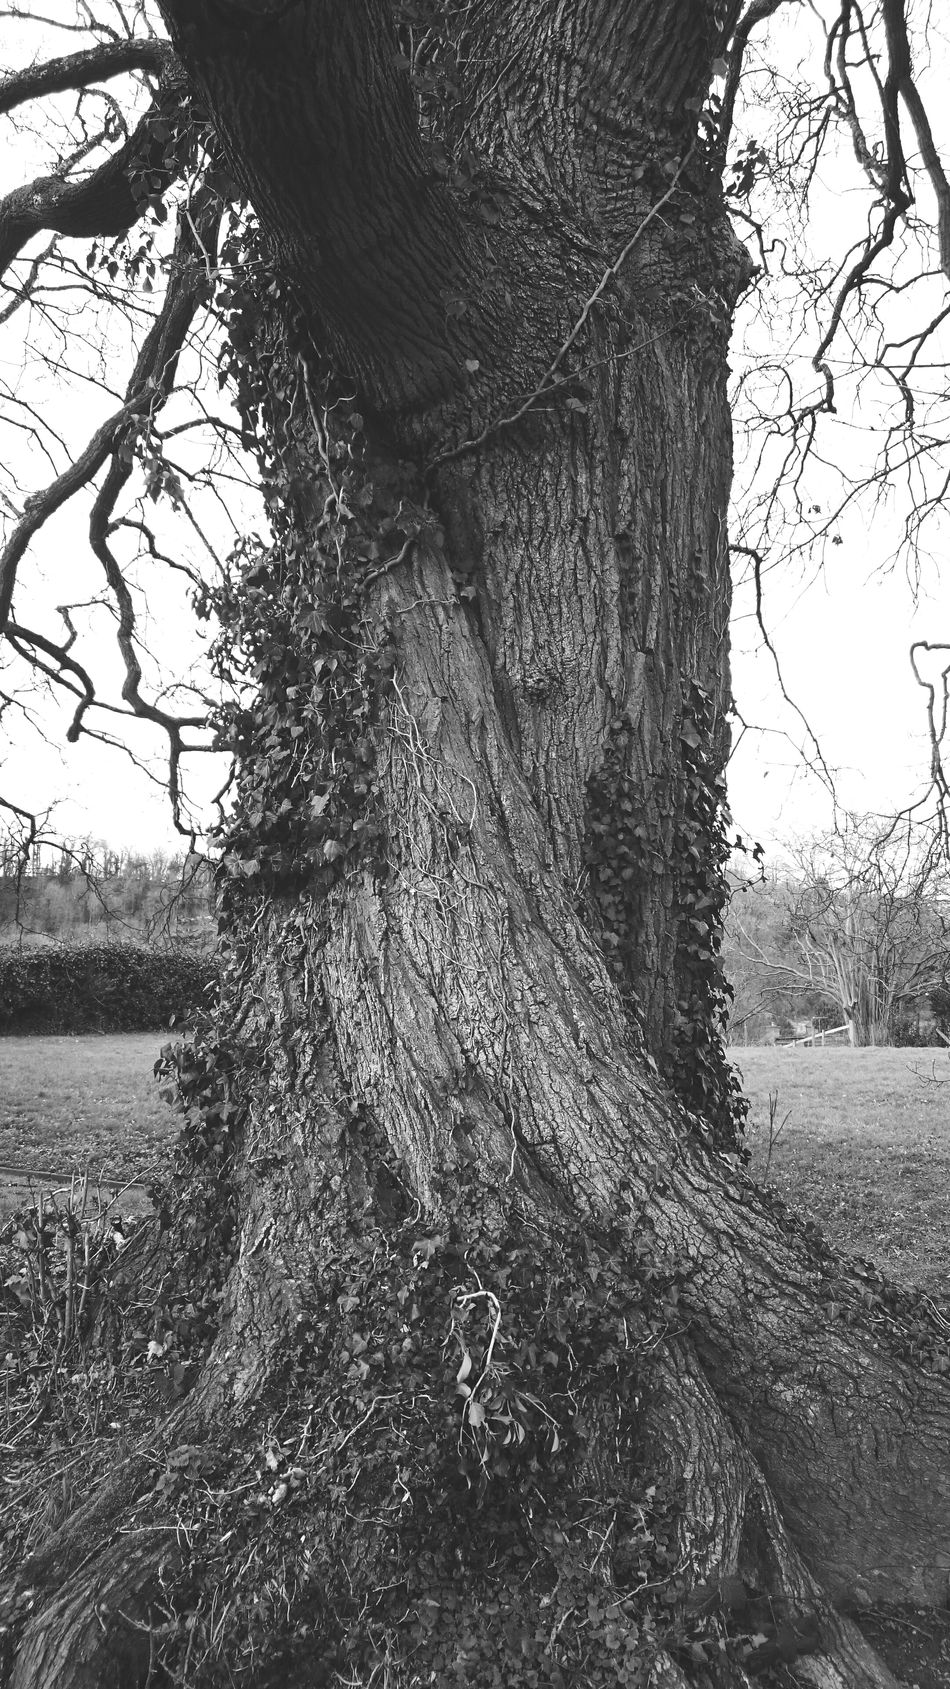 Twisted Dream Oak Twisted Tree Check This Out TreePorn For The Love Of Black And White Tree_collection  Twist Nature TwistedWood Oak Tree Old Oak Tree